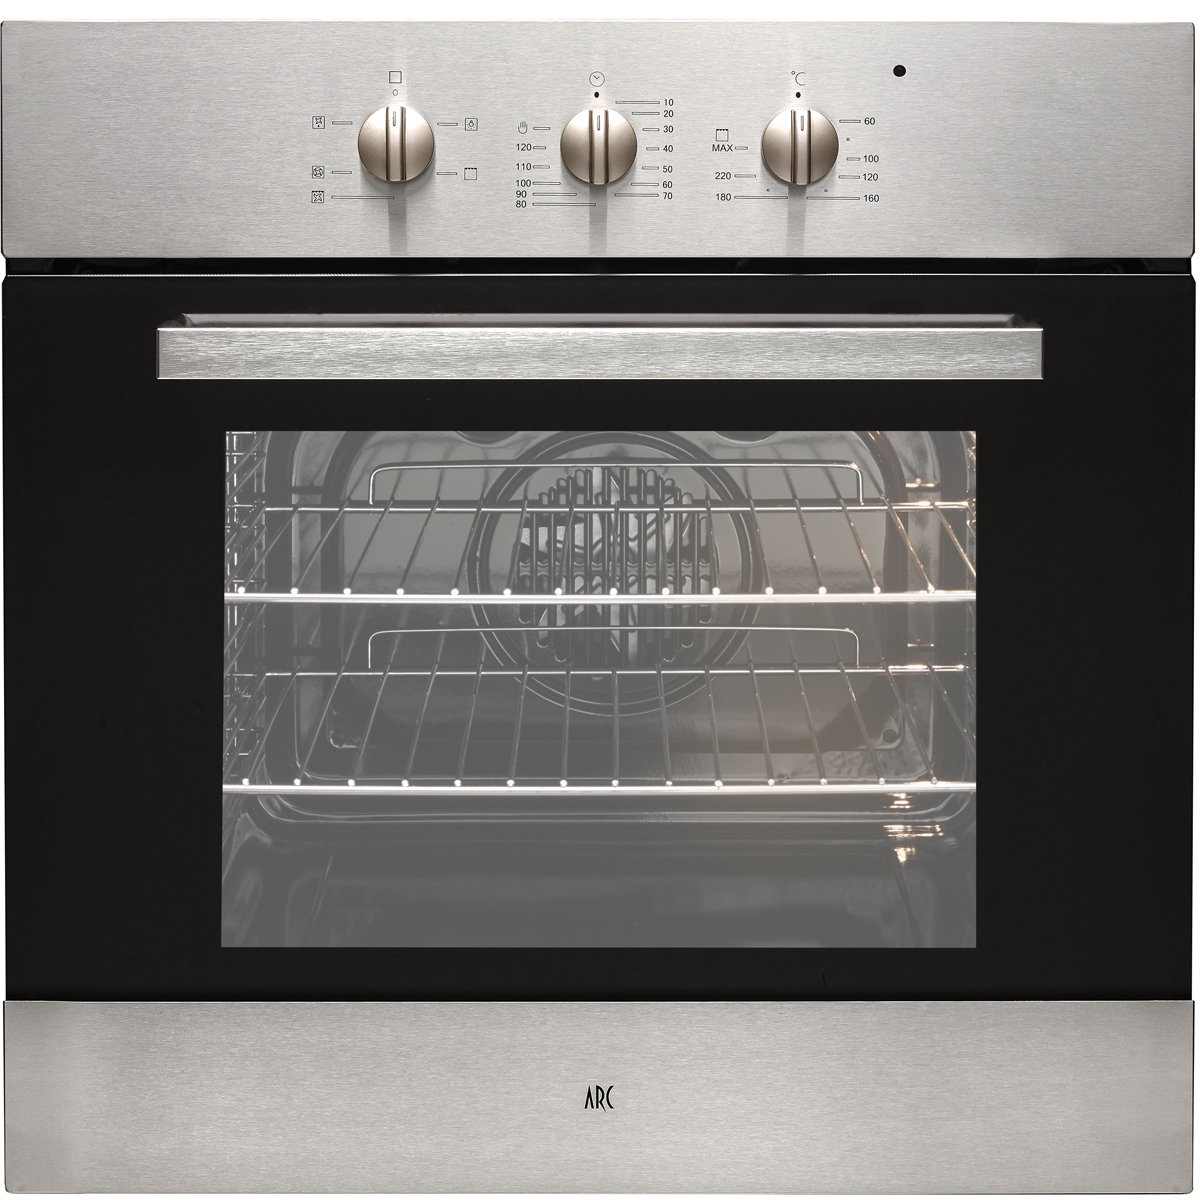 appliances dual oven multifunction product fuel cooking kleenmaid img kitchen freestanding ovens products zoom